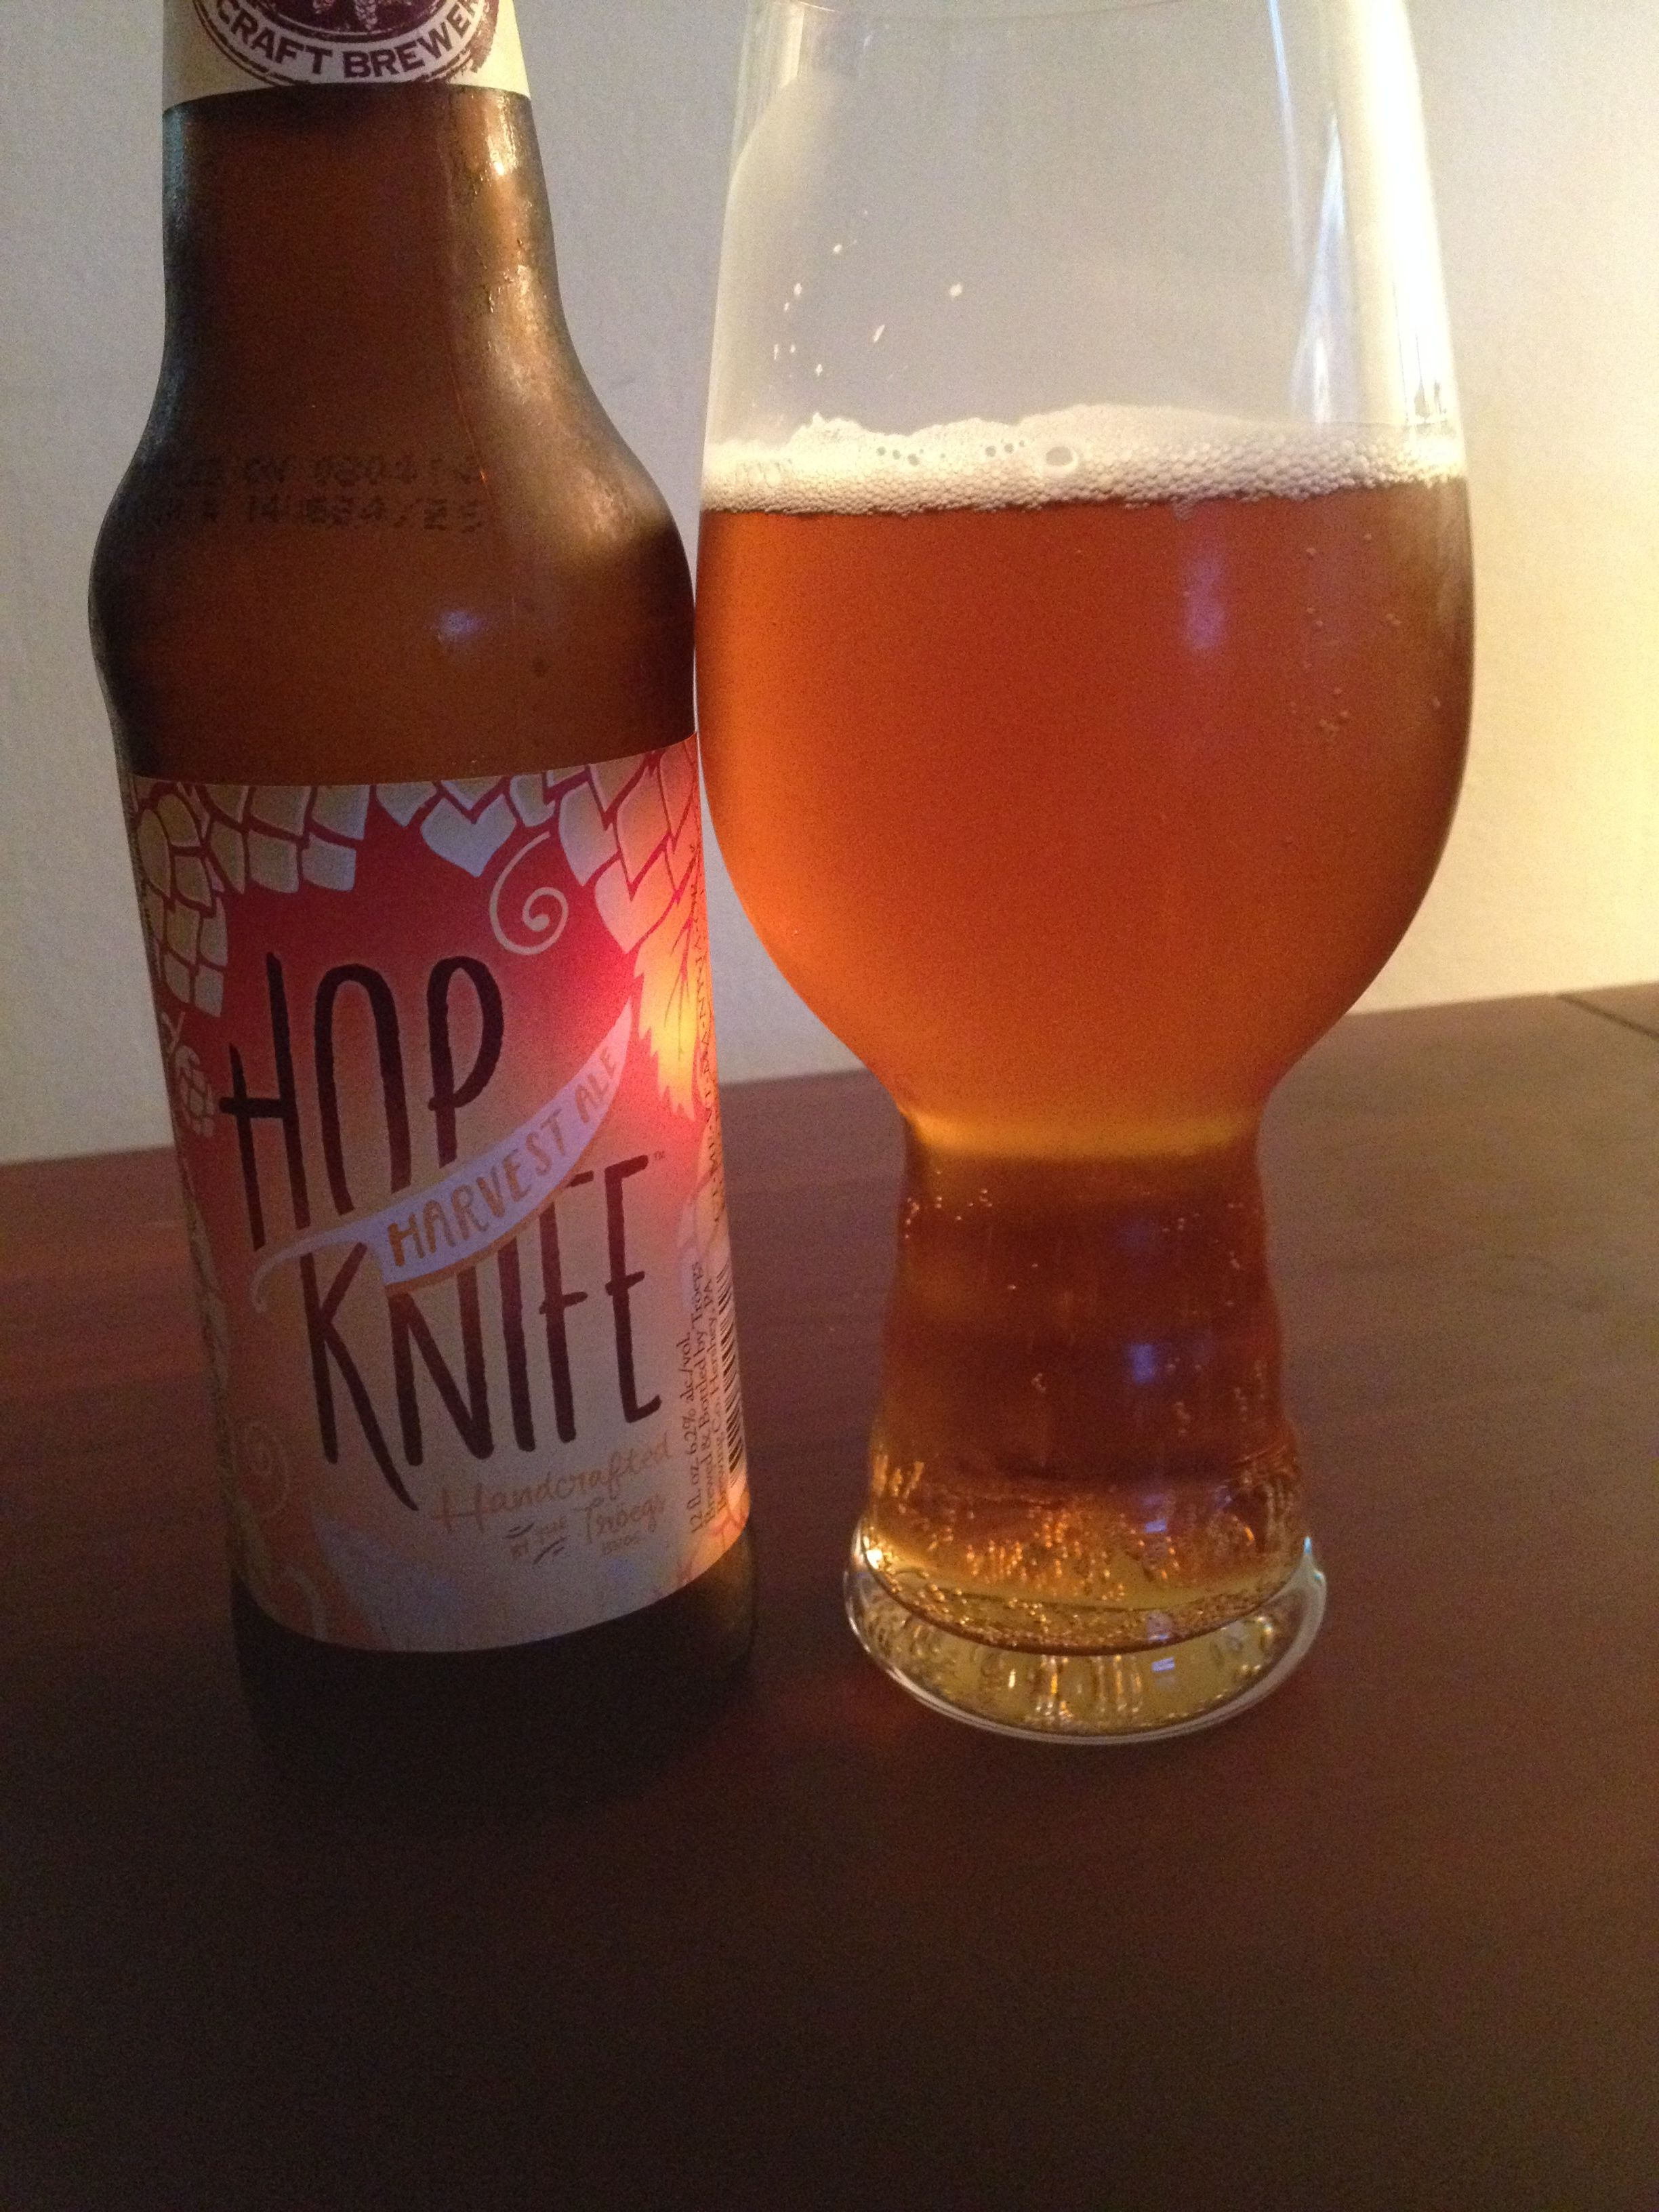 Troegs (Hershey, PA) Hop Knife Harvest Ale is an AIPA, 6.2 ABV and ...